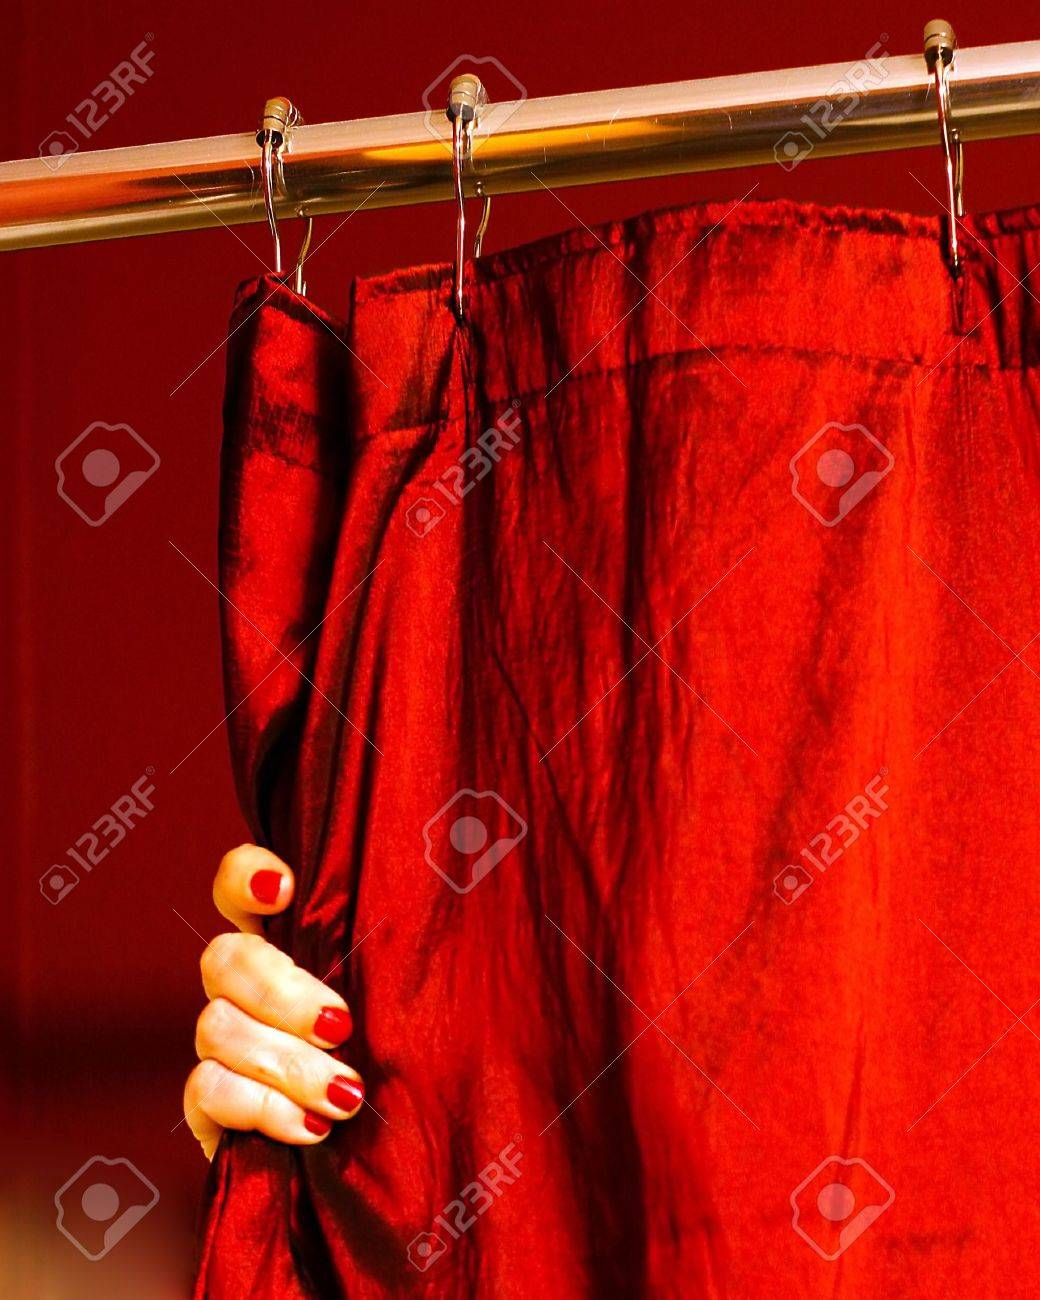 Red shower curtain - A Portrait Photograph Of A Woman S Hand With Painted Finger Nails Holding A Red Shower Curtain